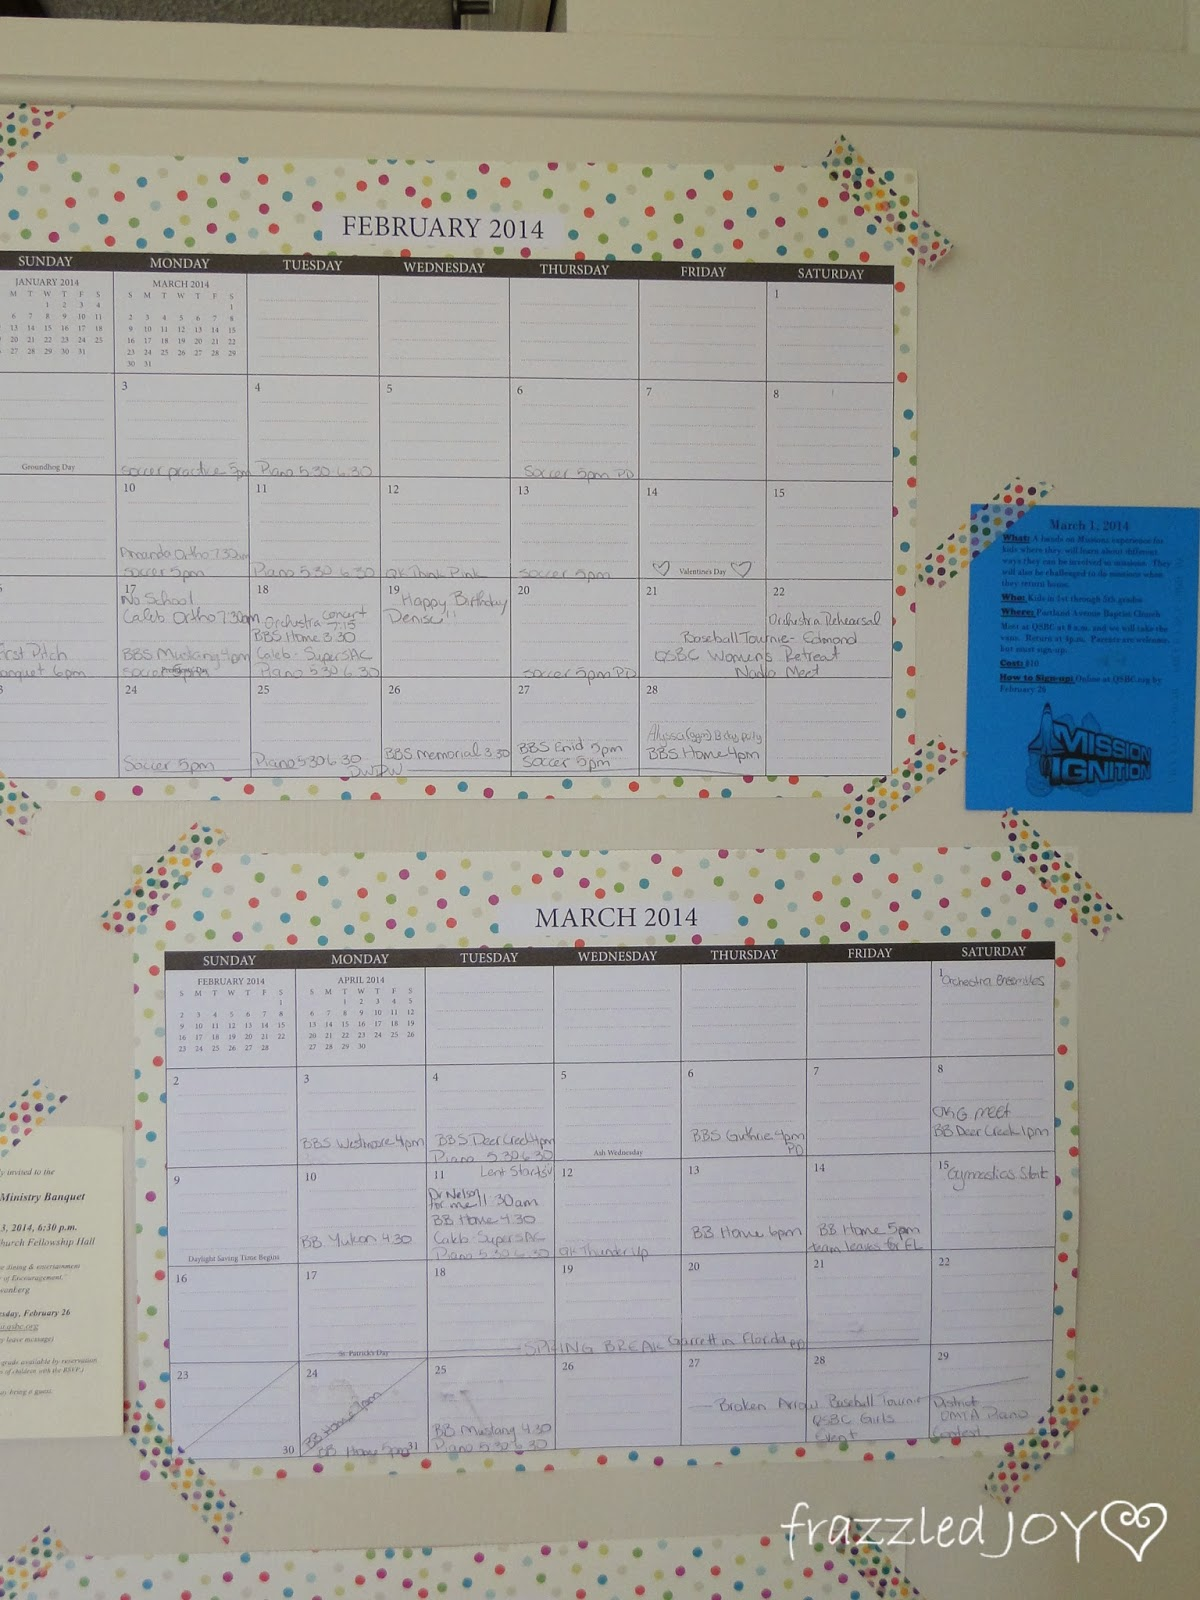 Wall calendars are a great way to keep up with the family schedule.